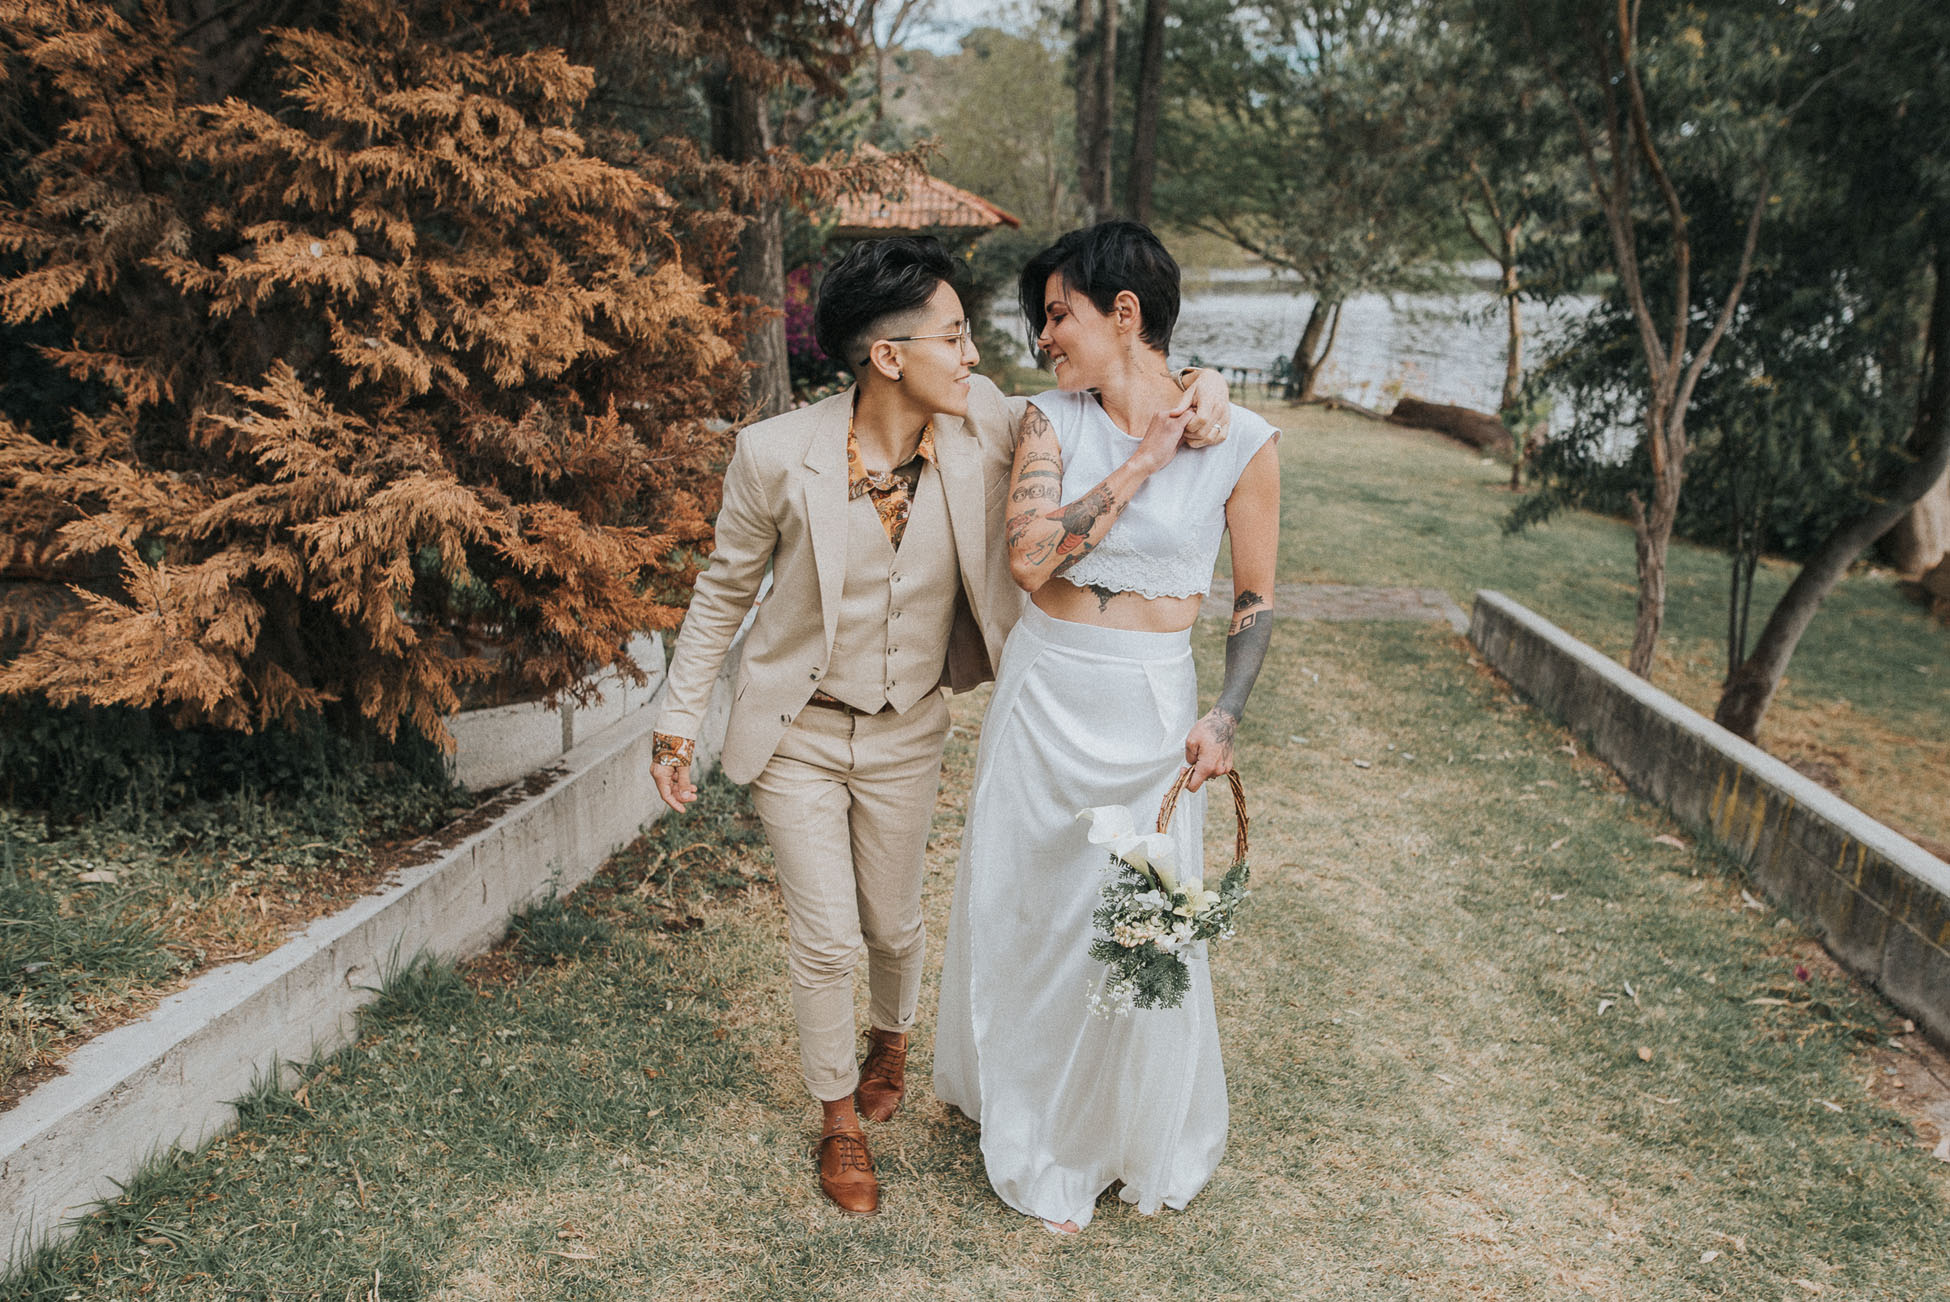 Intimate and Colorful Wedding in Mexico - Same-Sex Wedding - Dancing With Her (1)